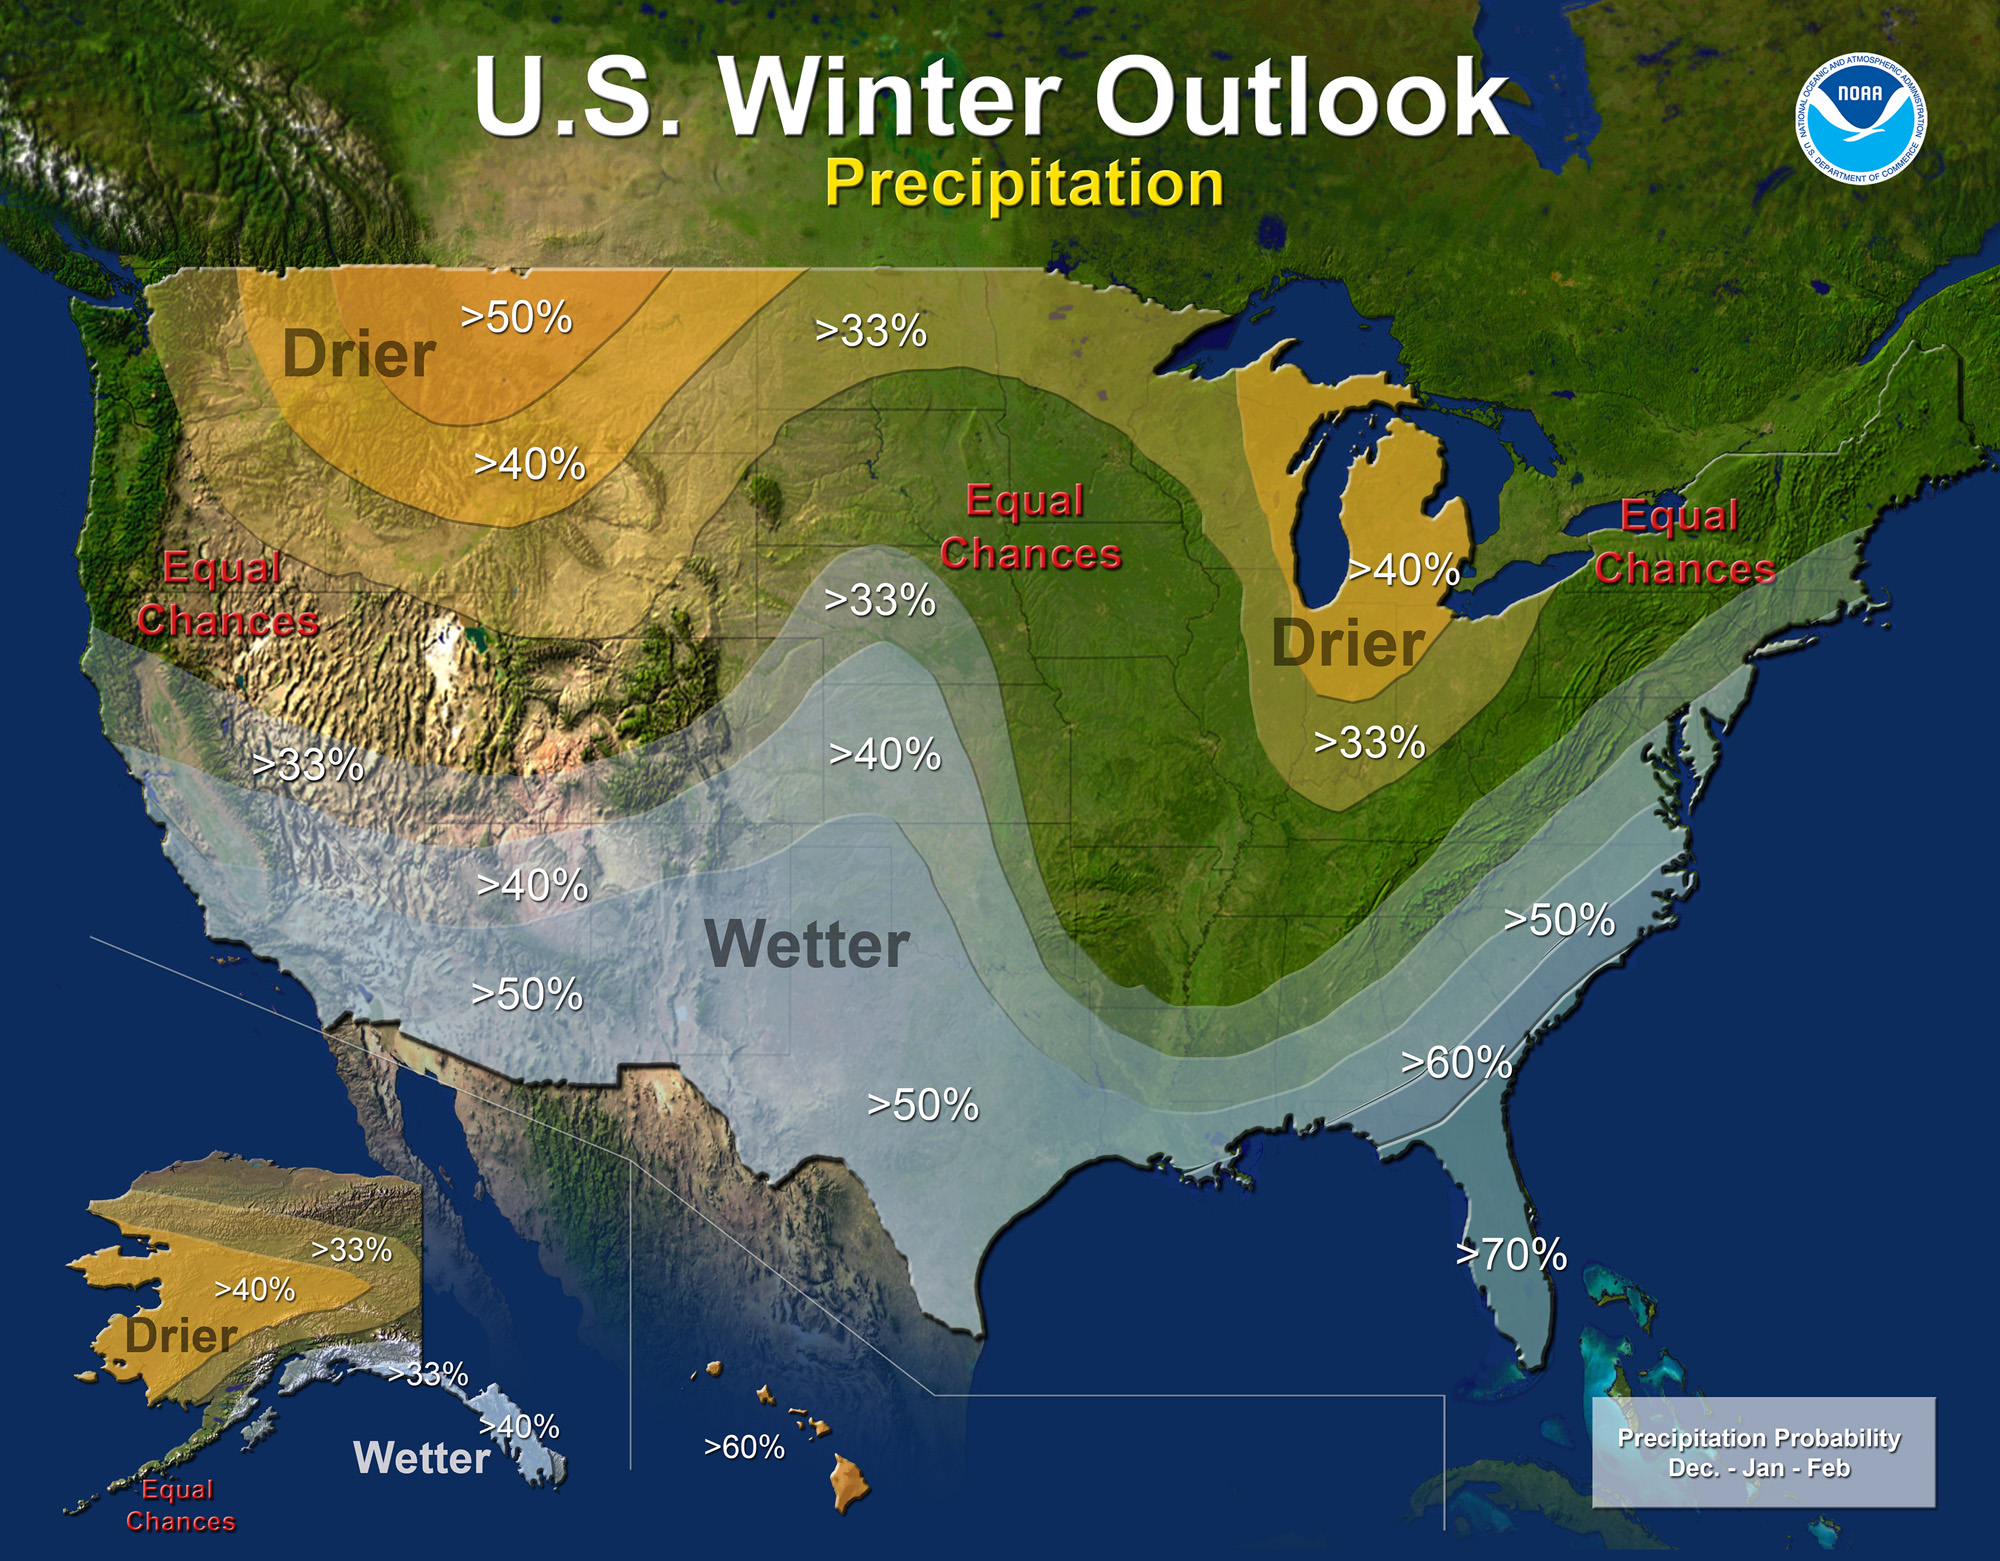 NOAA's official El Nino/Winter outlook for the USA shows a 33% chance or higher of above average precipitation in the Sierra Nevada, CA.